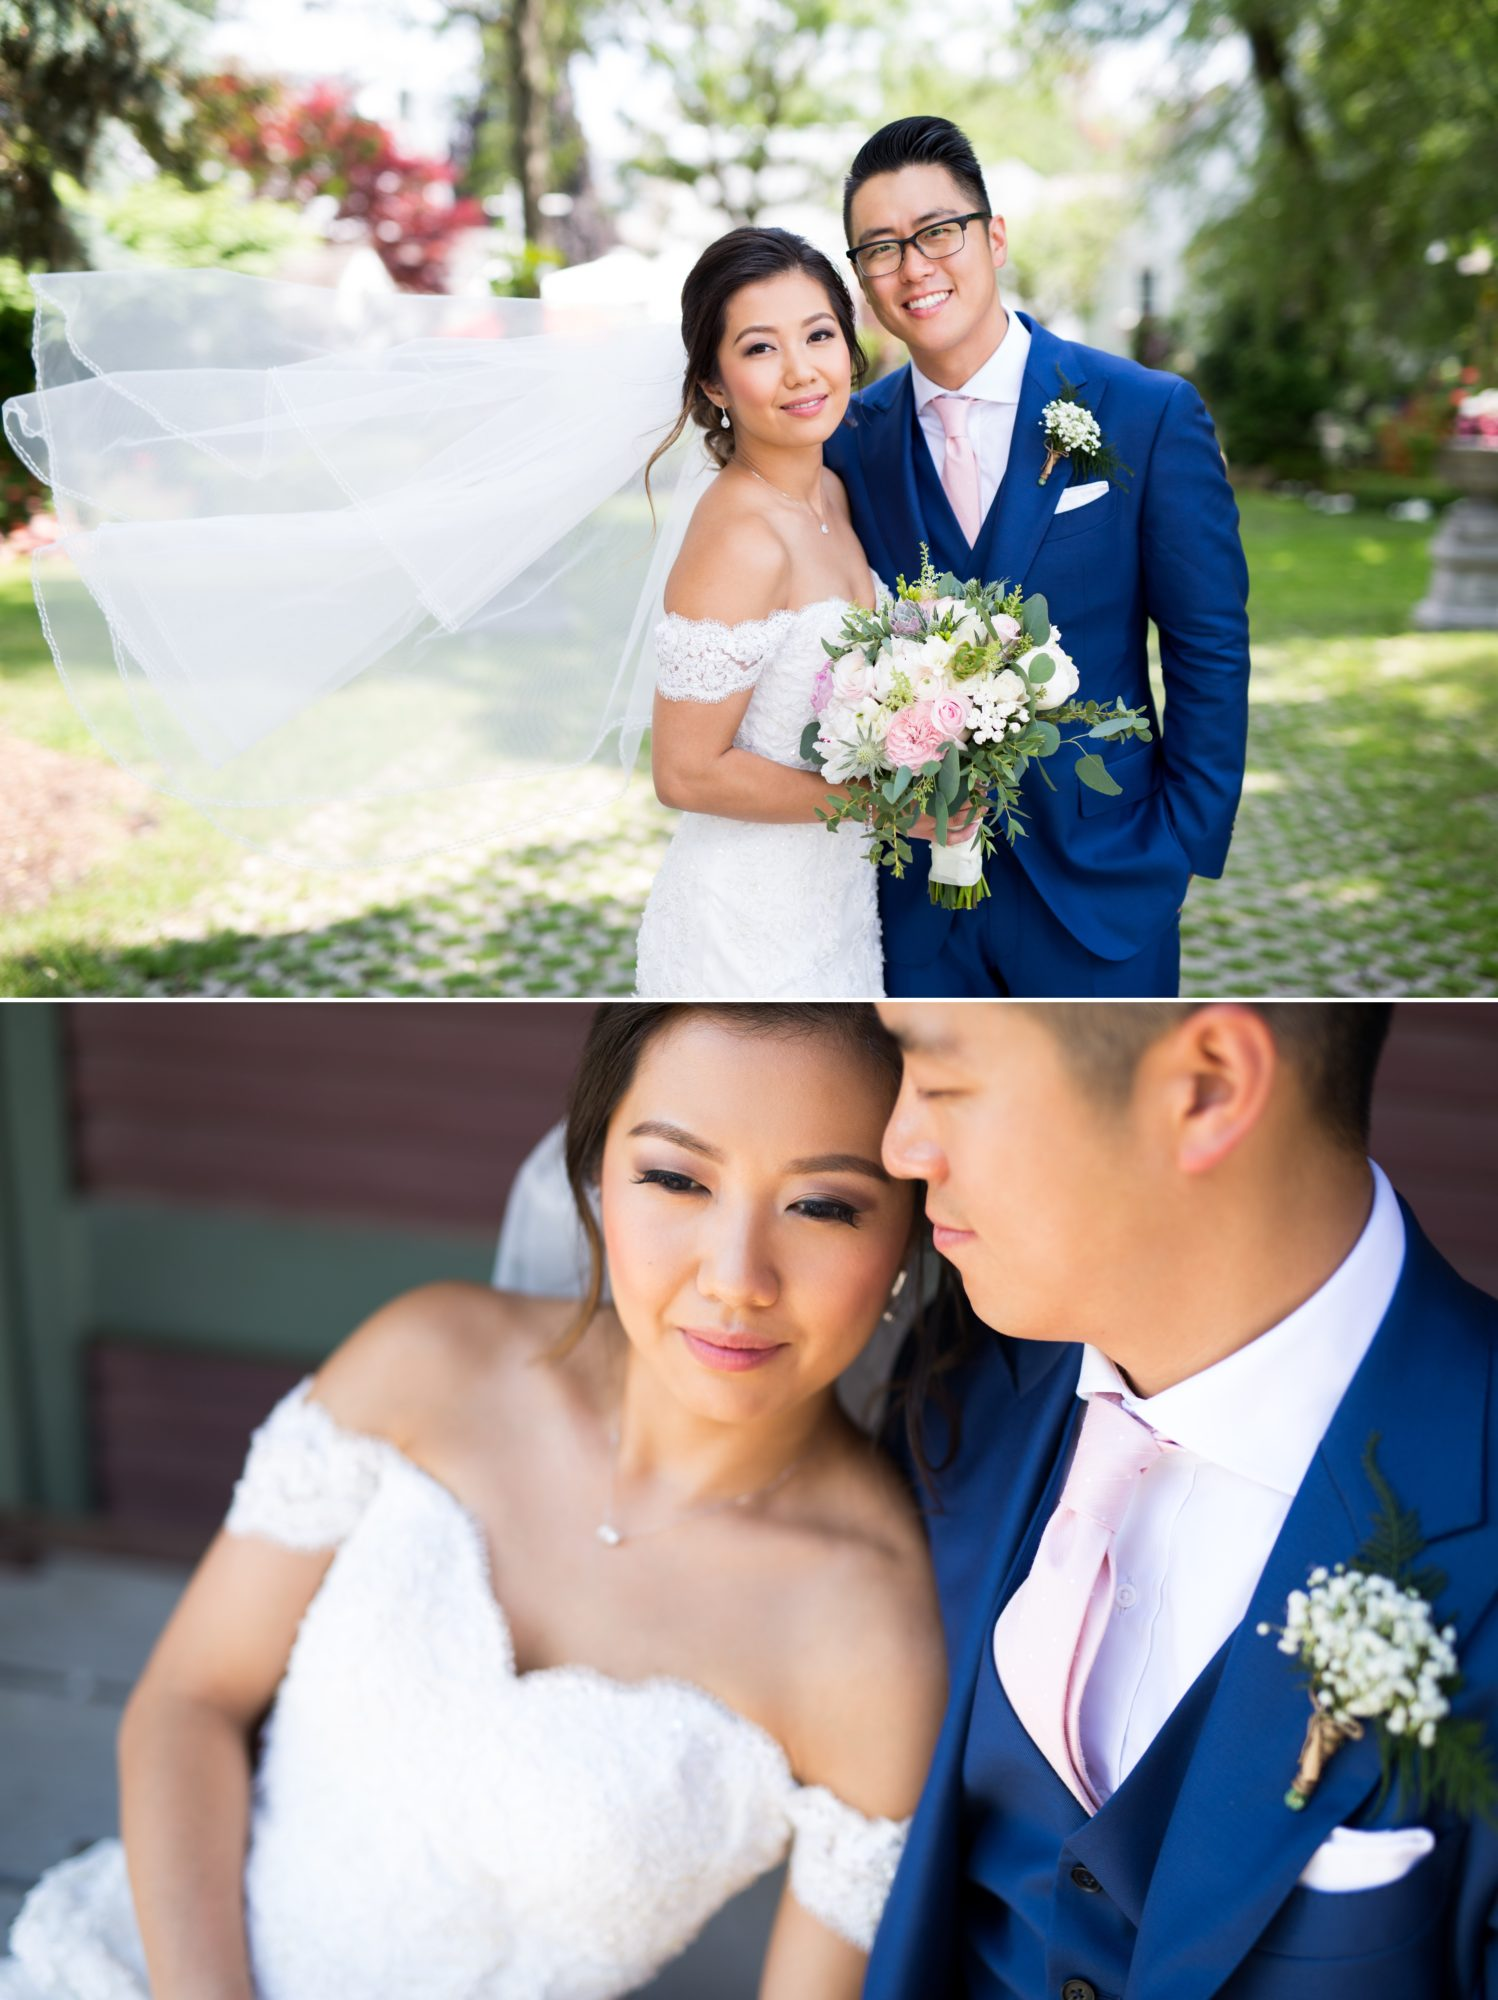 Couple Veil Toronto Chinese Korean Wedding Zsuzsi Pal Photography